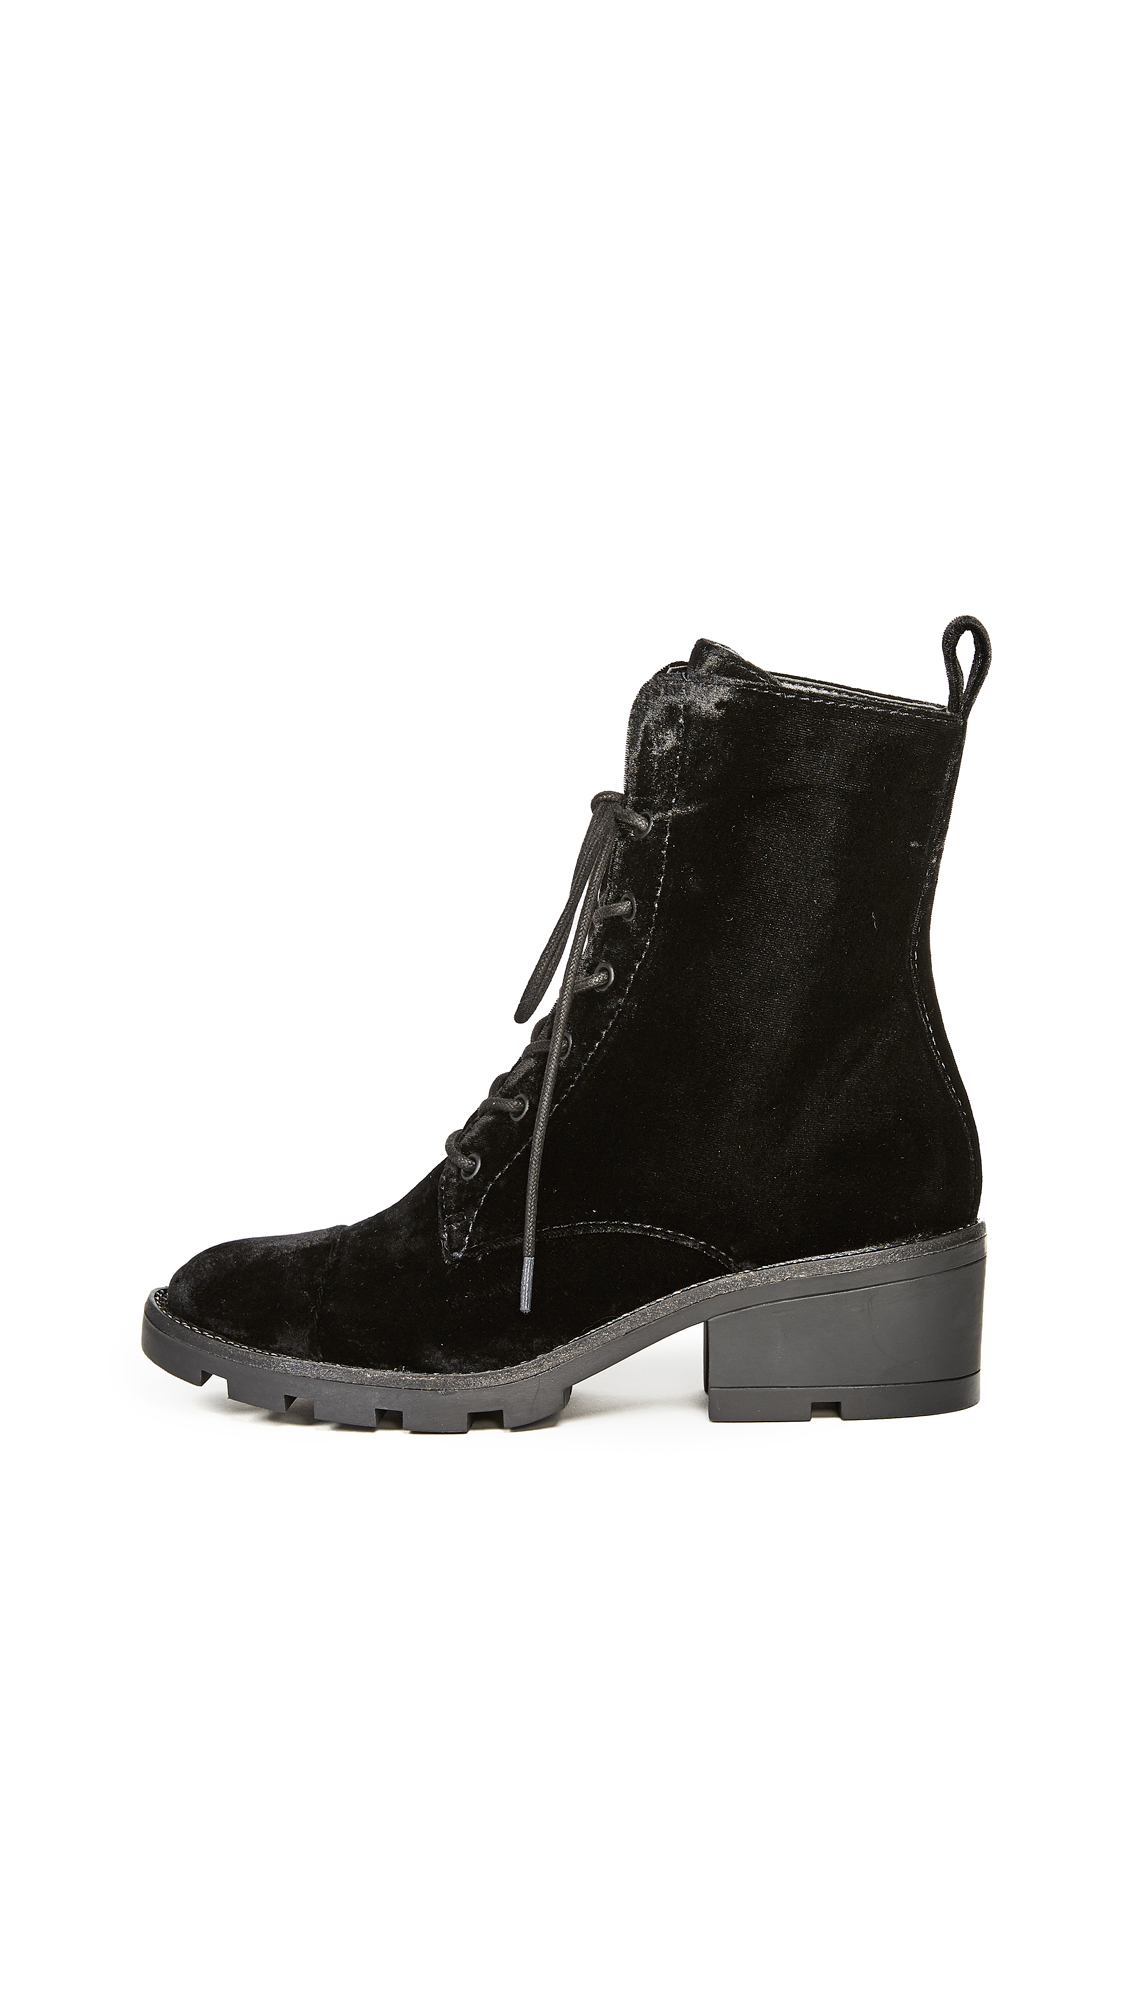 KENDALL + KYLIE Park Lace Up Booties - Black